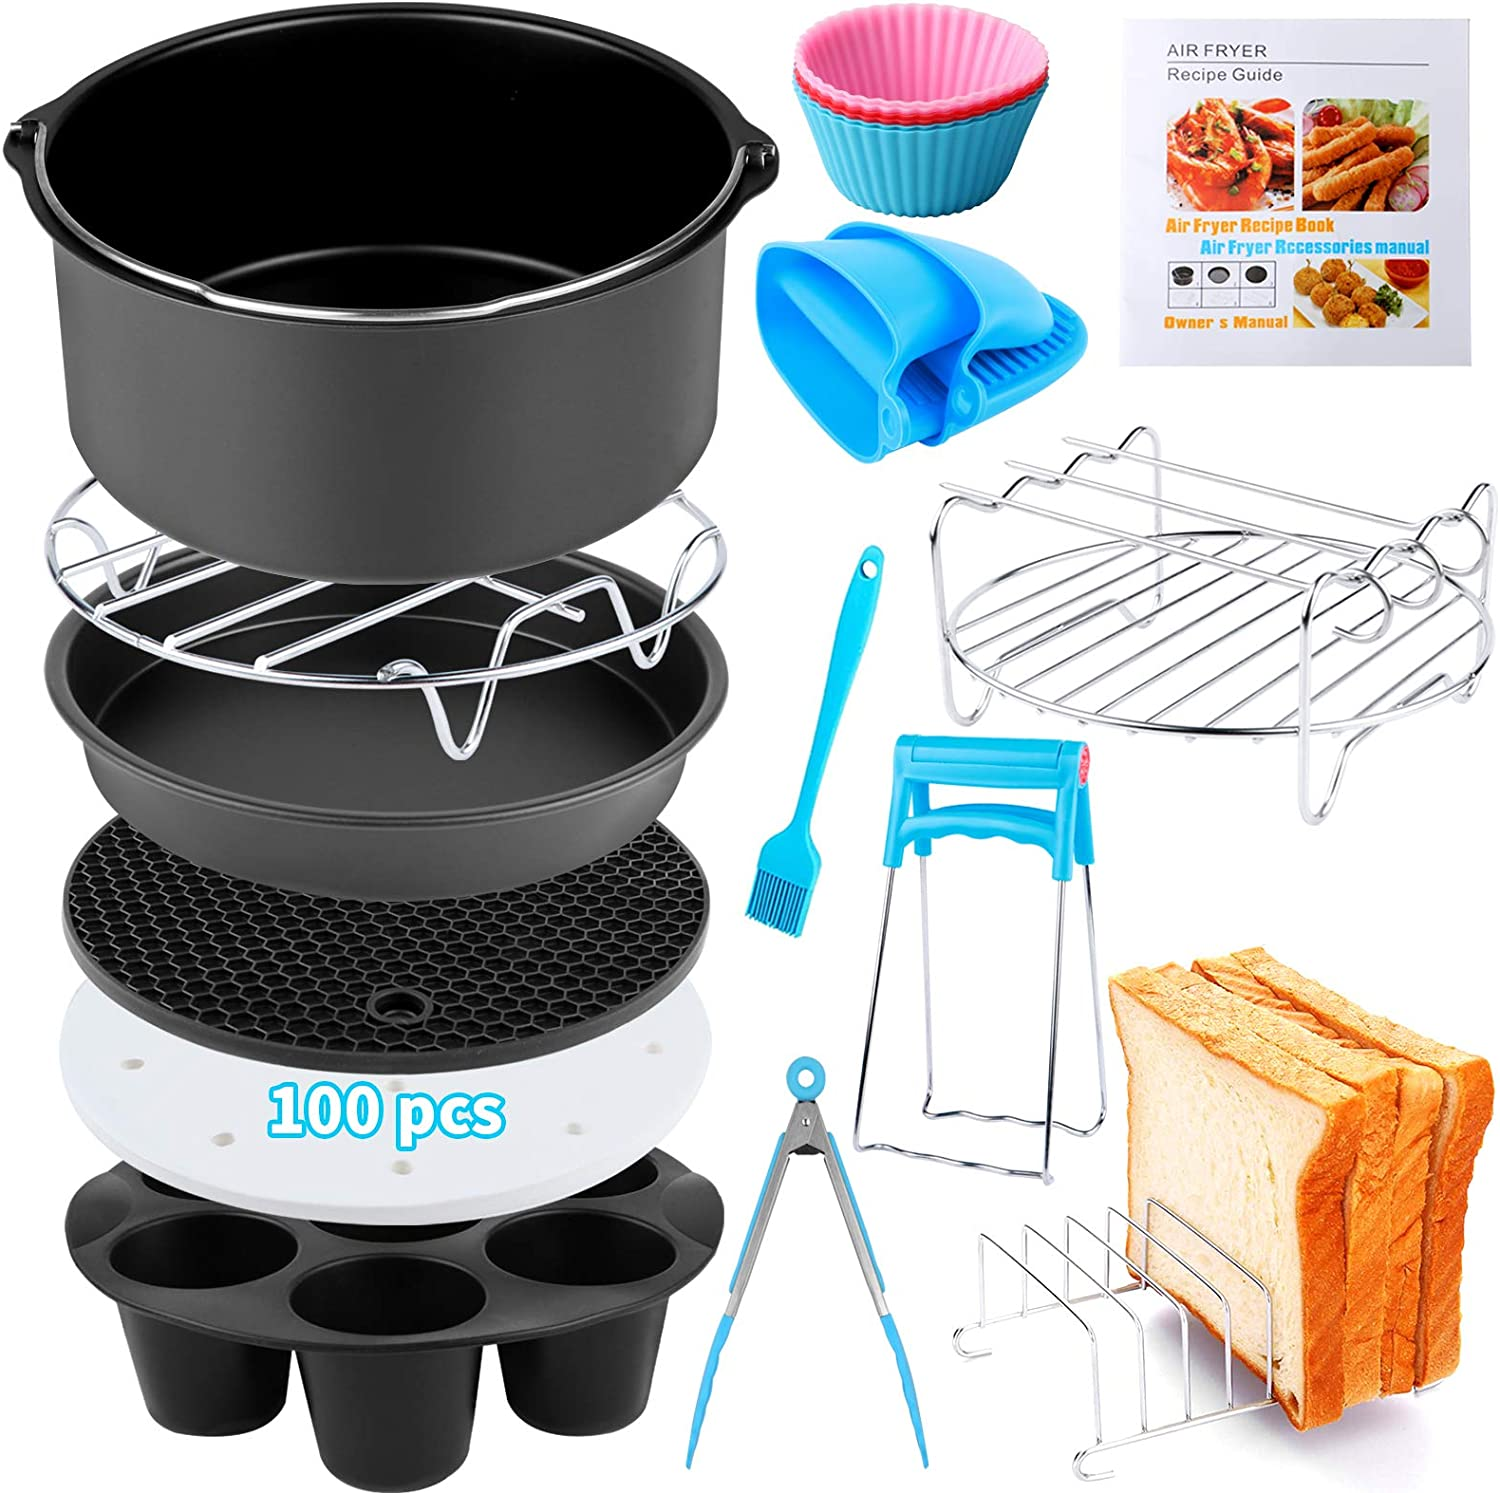 Air National products Fryer Accessories 12 PCS for Ninja Ranking integrated 1st place COSORI Go Phillips Gowise